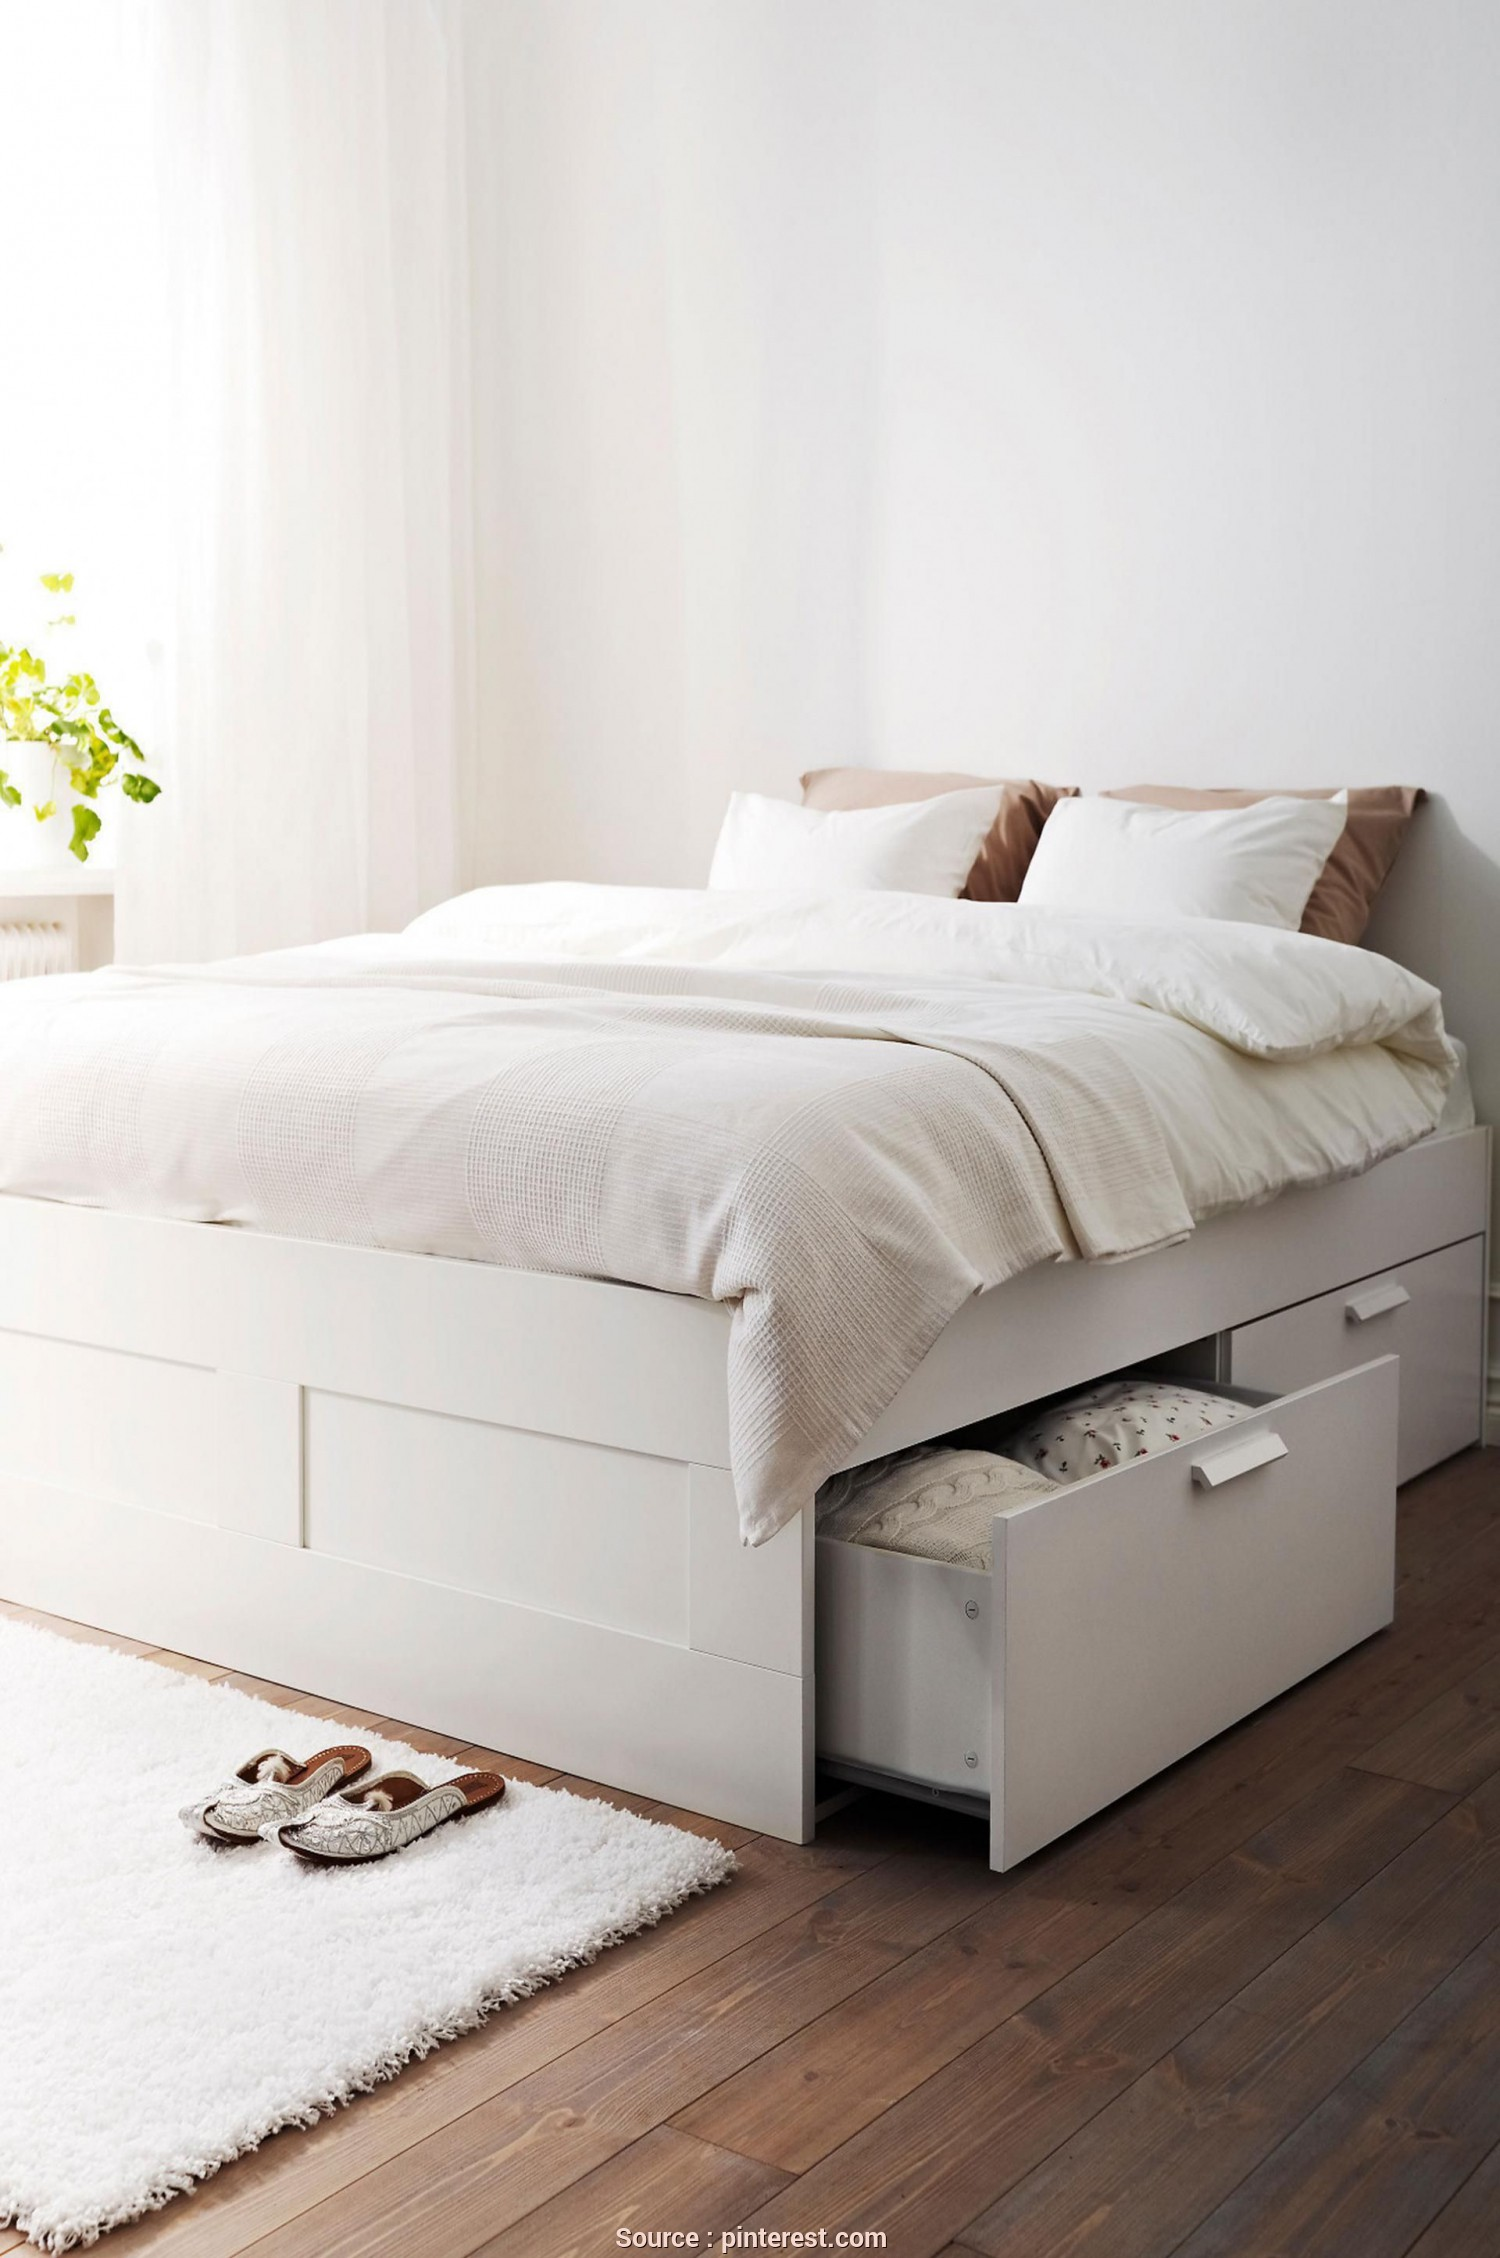 Brimnes Letto Video, Grande Ikea-Bed-Frame-Drawers, Bedroom Inspiration, Bedroom, Brimnes